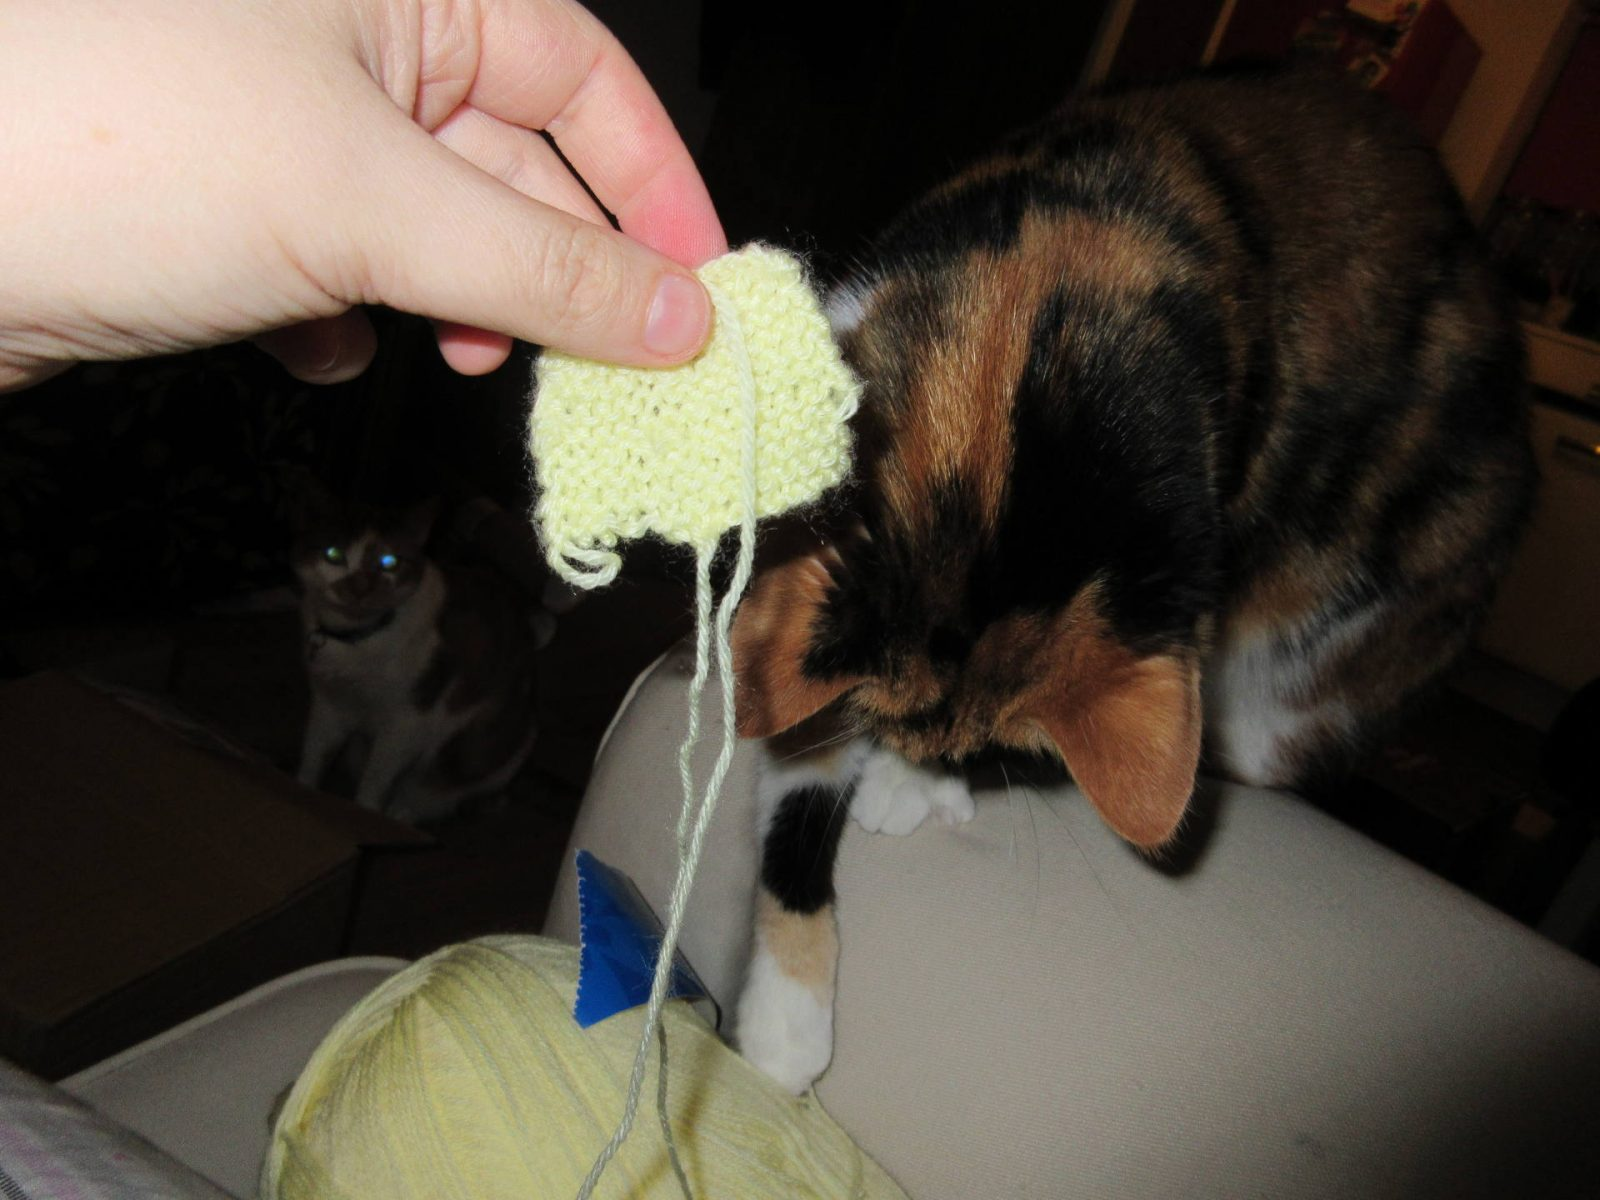 #digitaldetox - Cats vs. Yarn